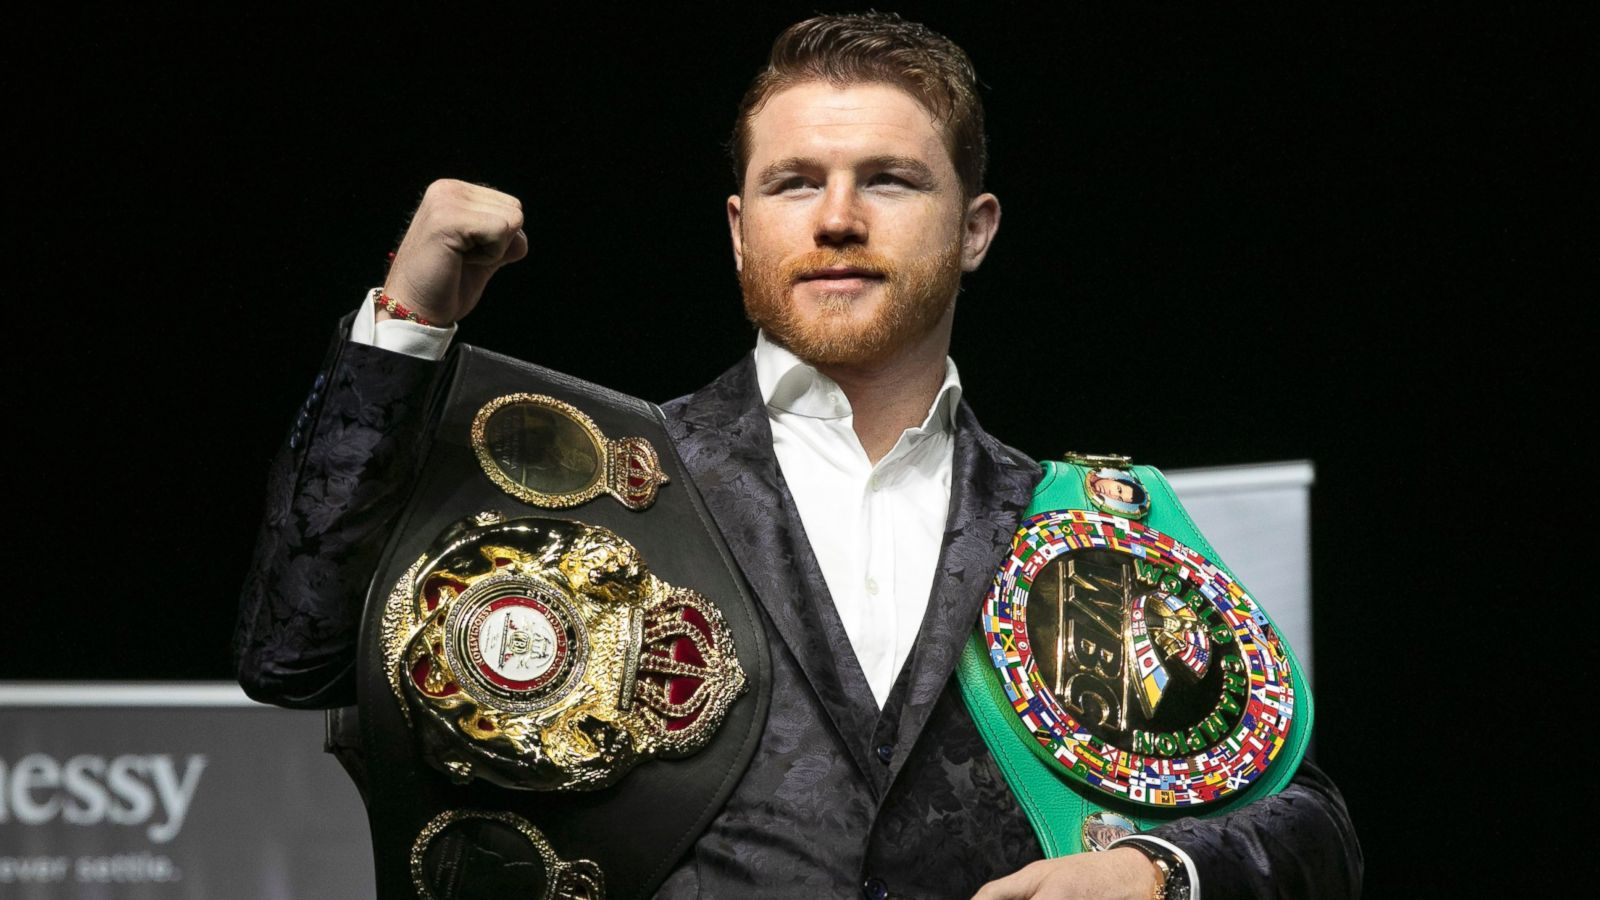 Canelo Alvarez Taking on Daniel Jacobs on May 4 in Middleweight Title Unification Fight